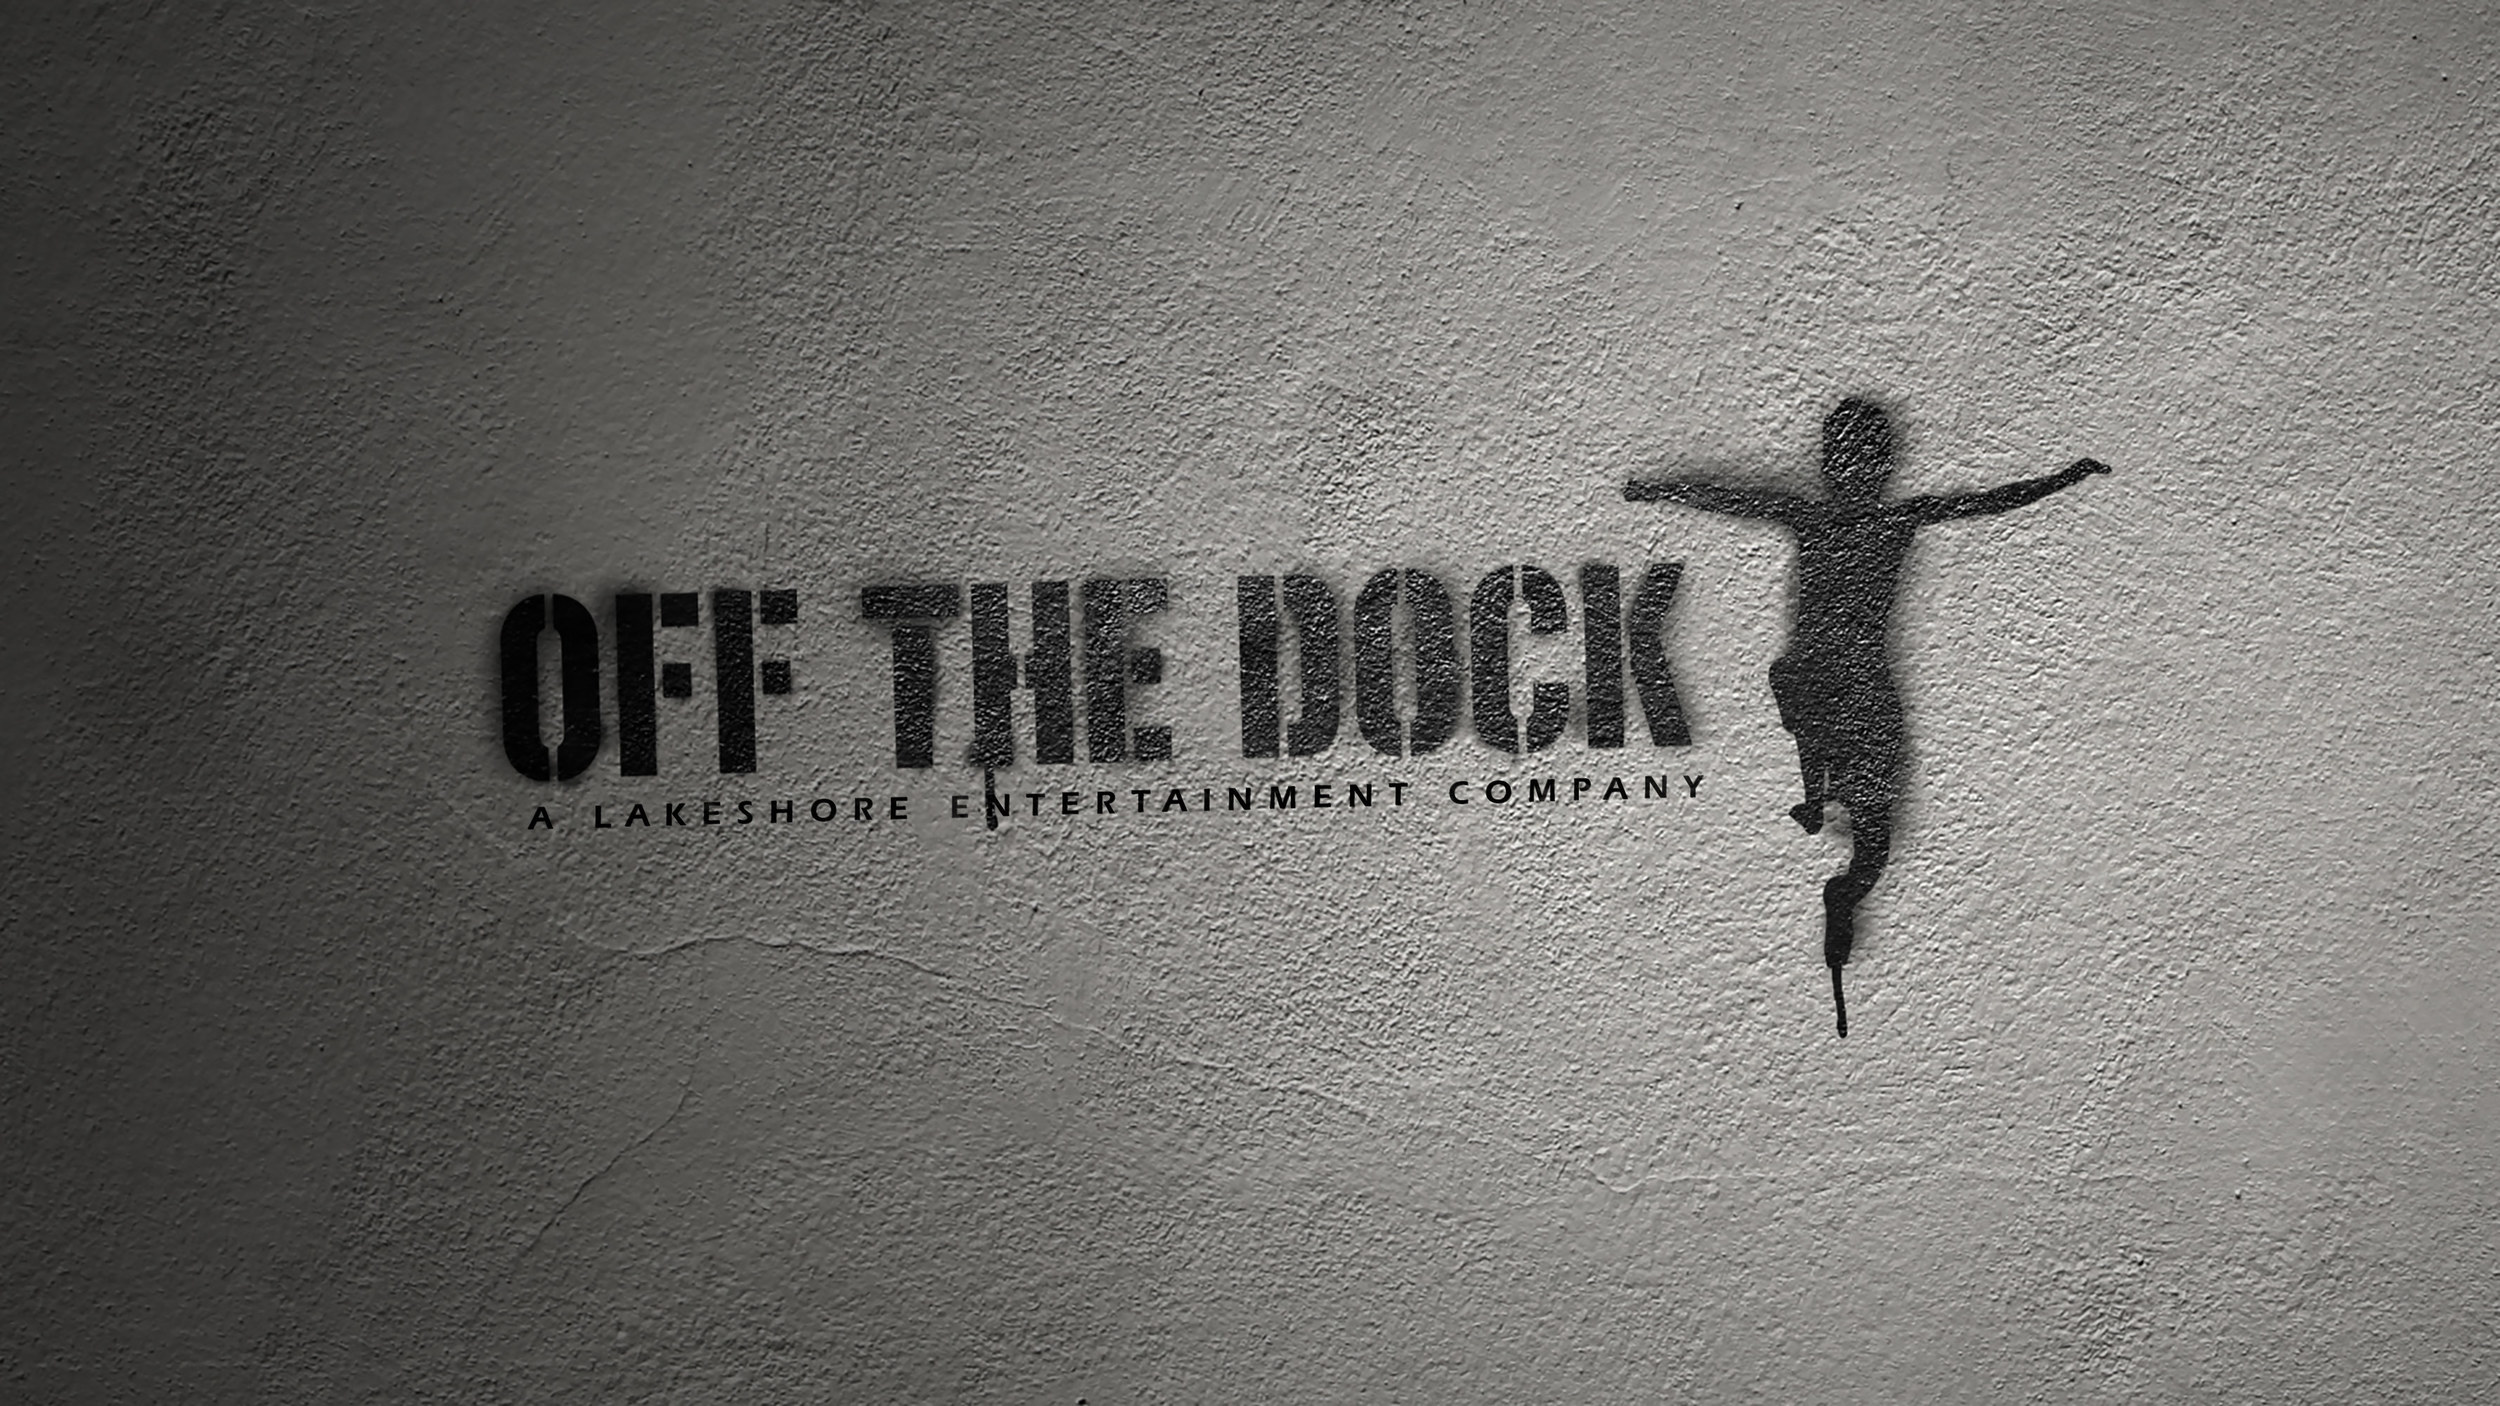 Final resolve of the Off The Dock motion Identity.